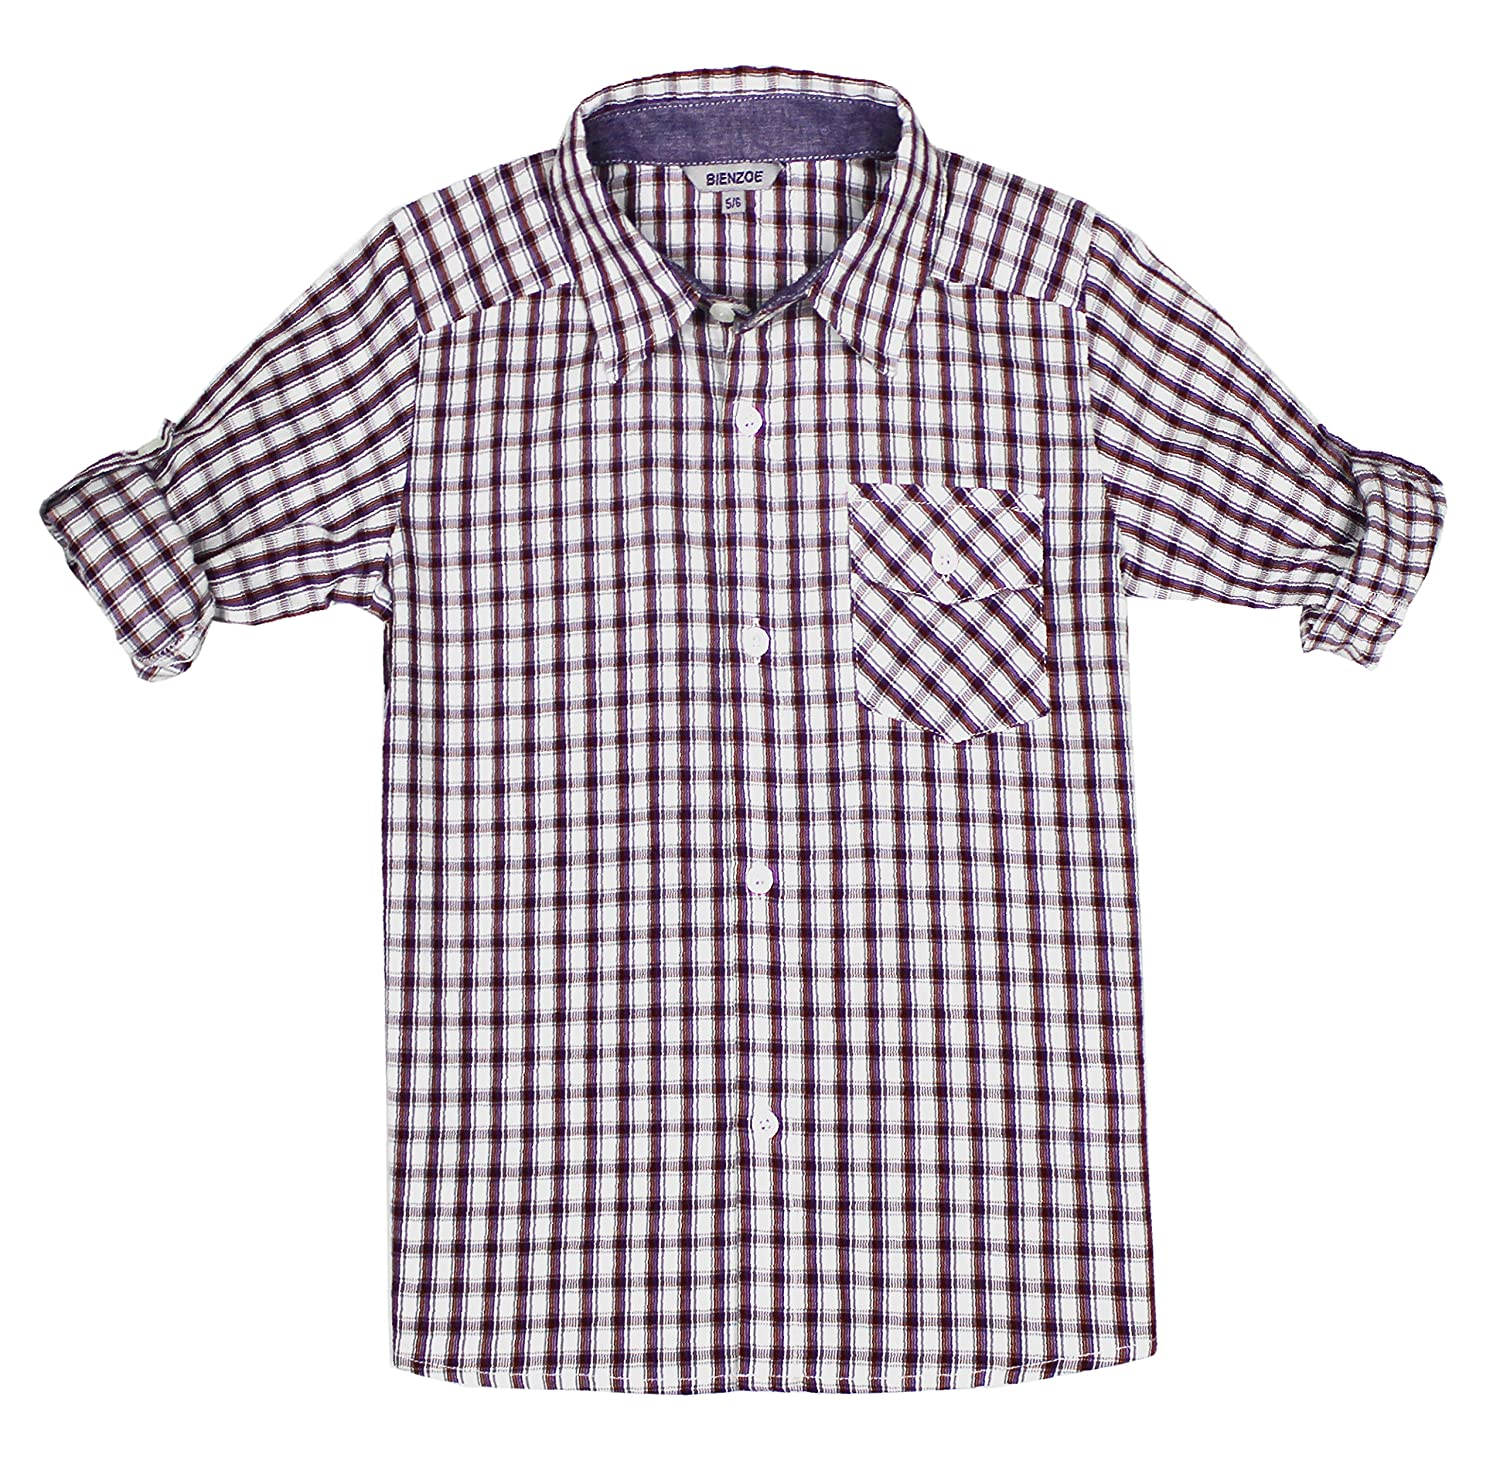 Bienzoe Boy 's Cotton Plaid Roll Up Sleeve Button Down Sports Shirts 160056EU